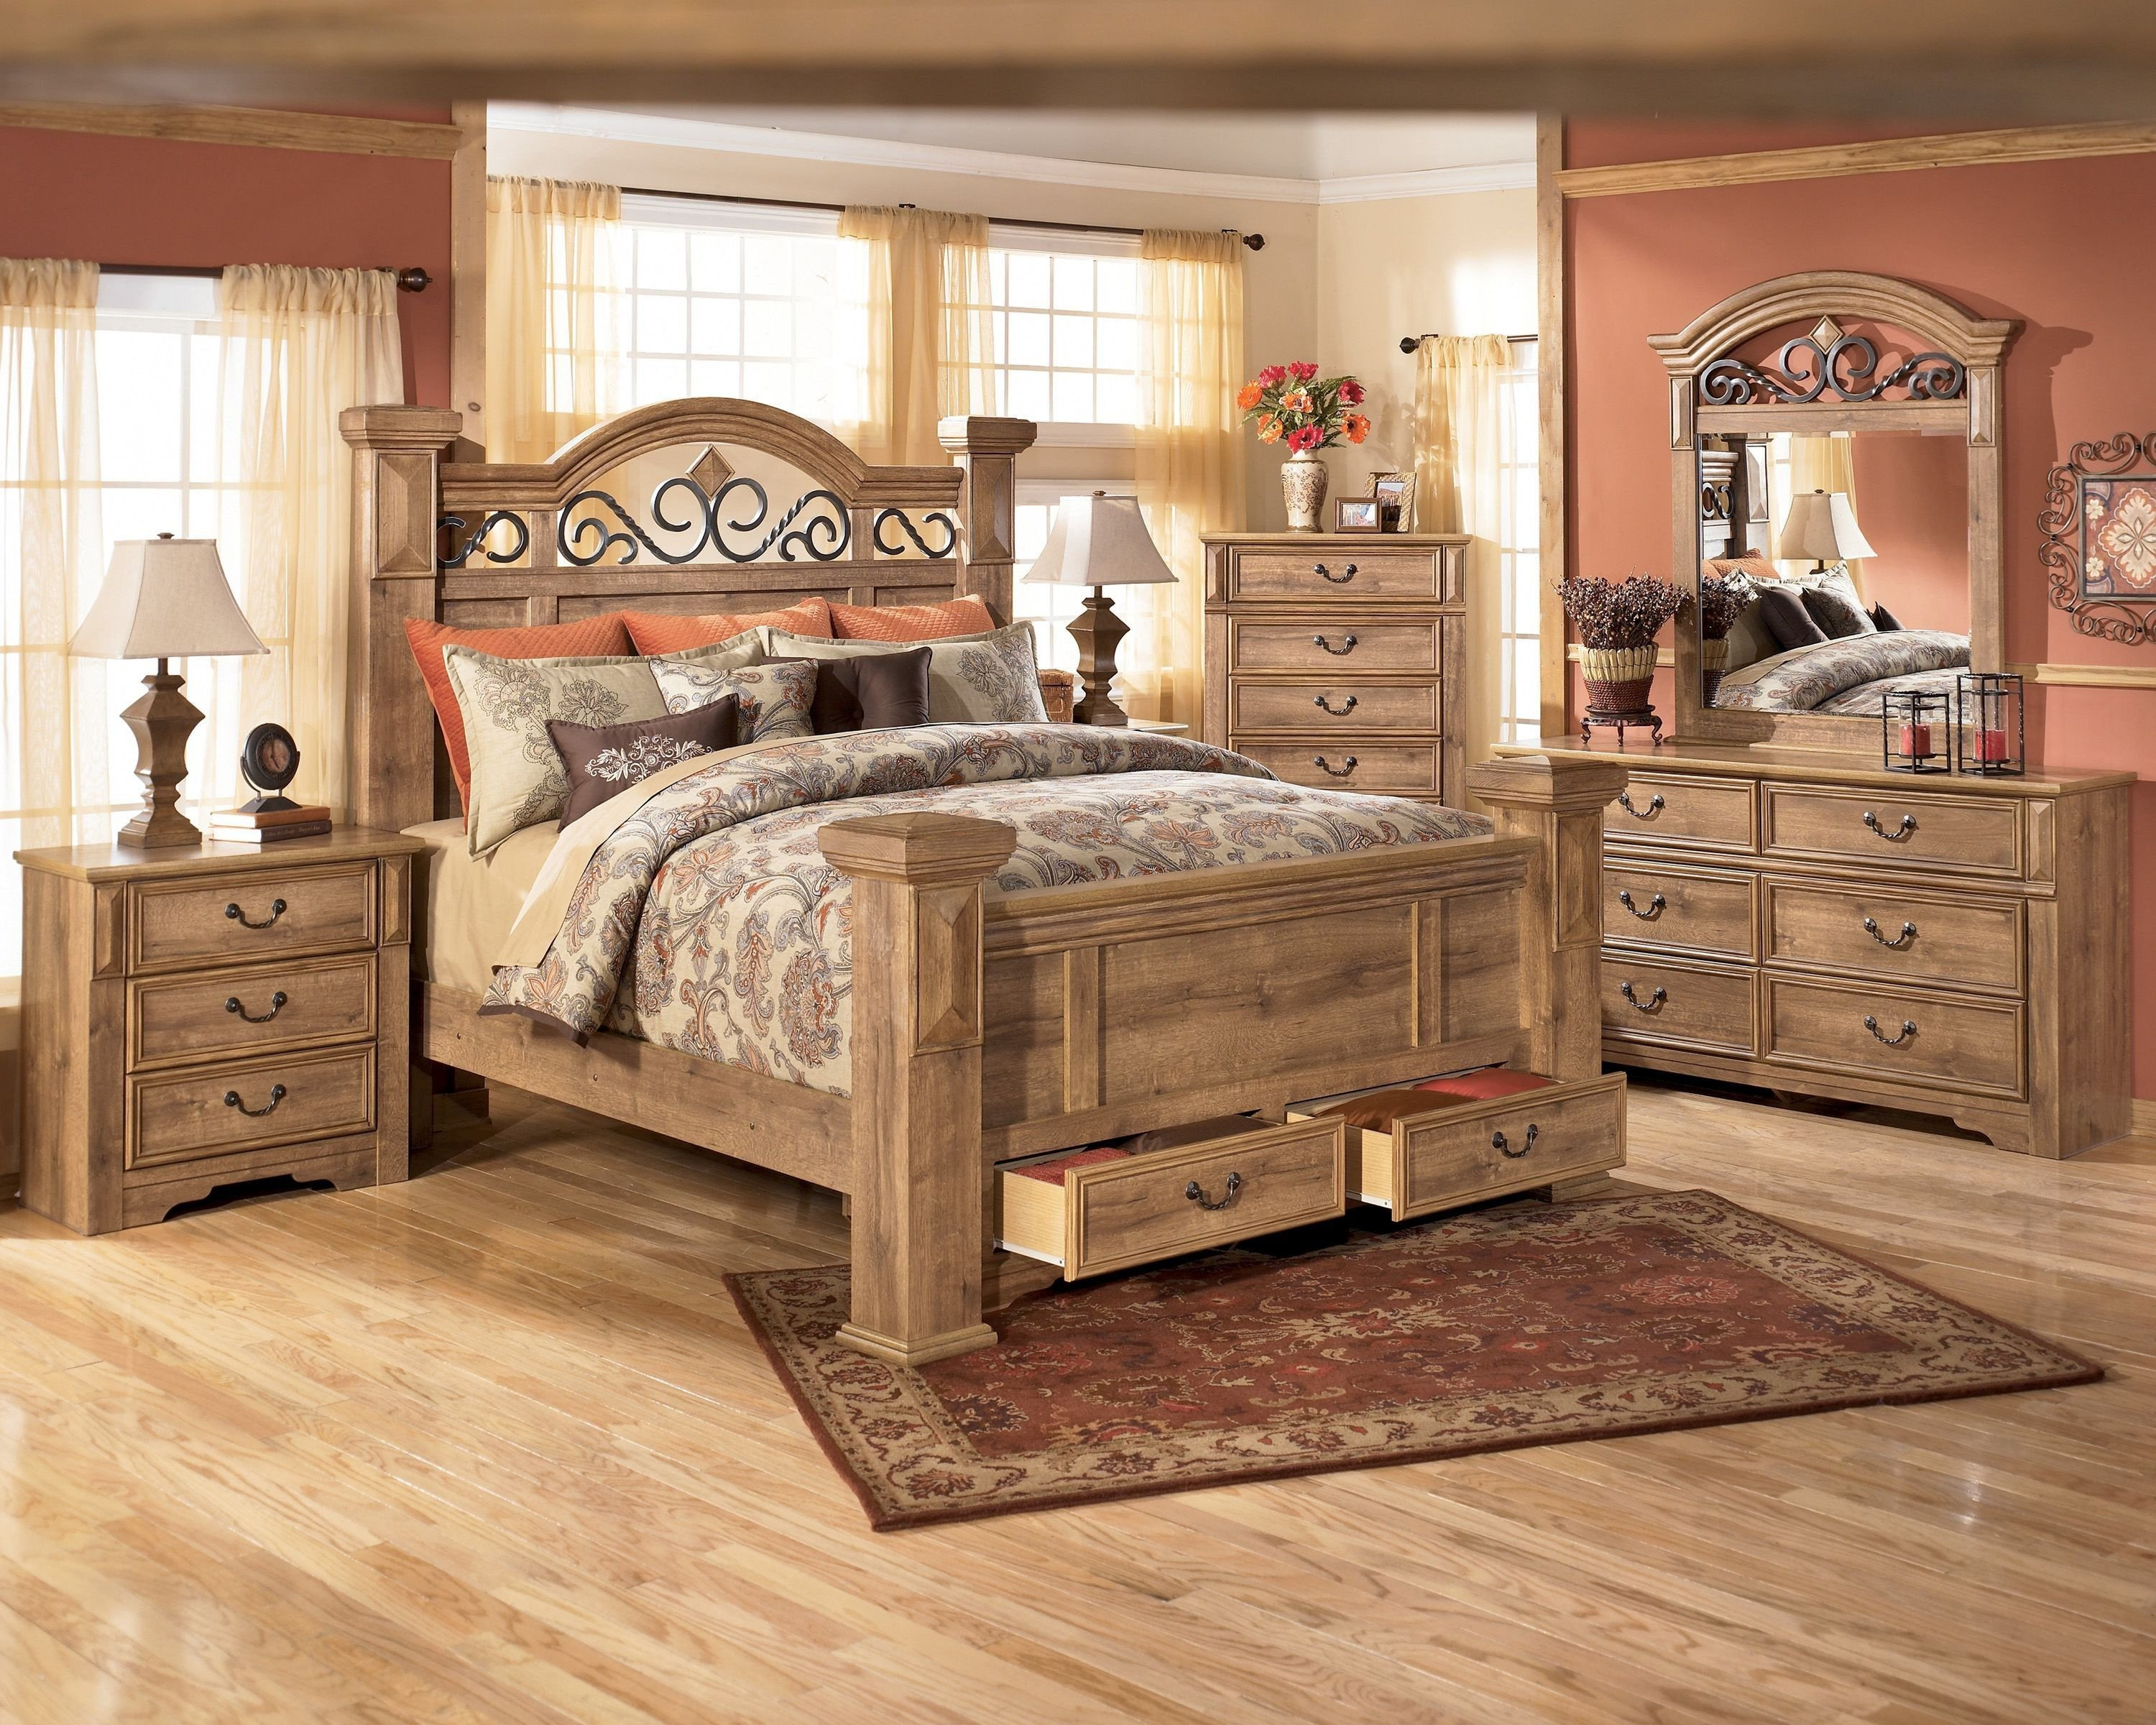 Rustic King Bedroom Set New Inspirational Rustic Bedroom Sets King Rustic Bedroom